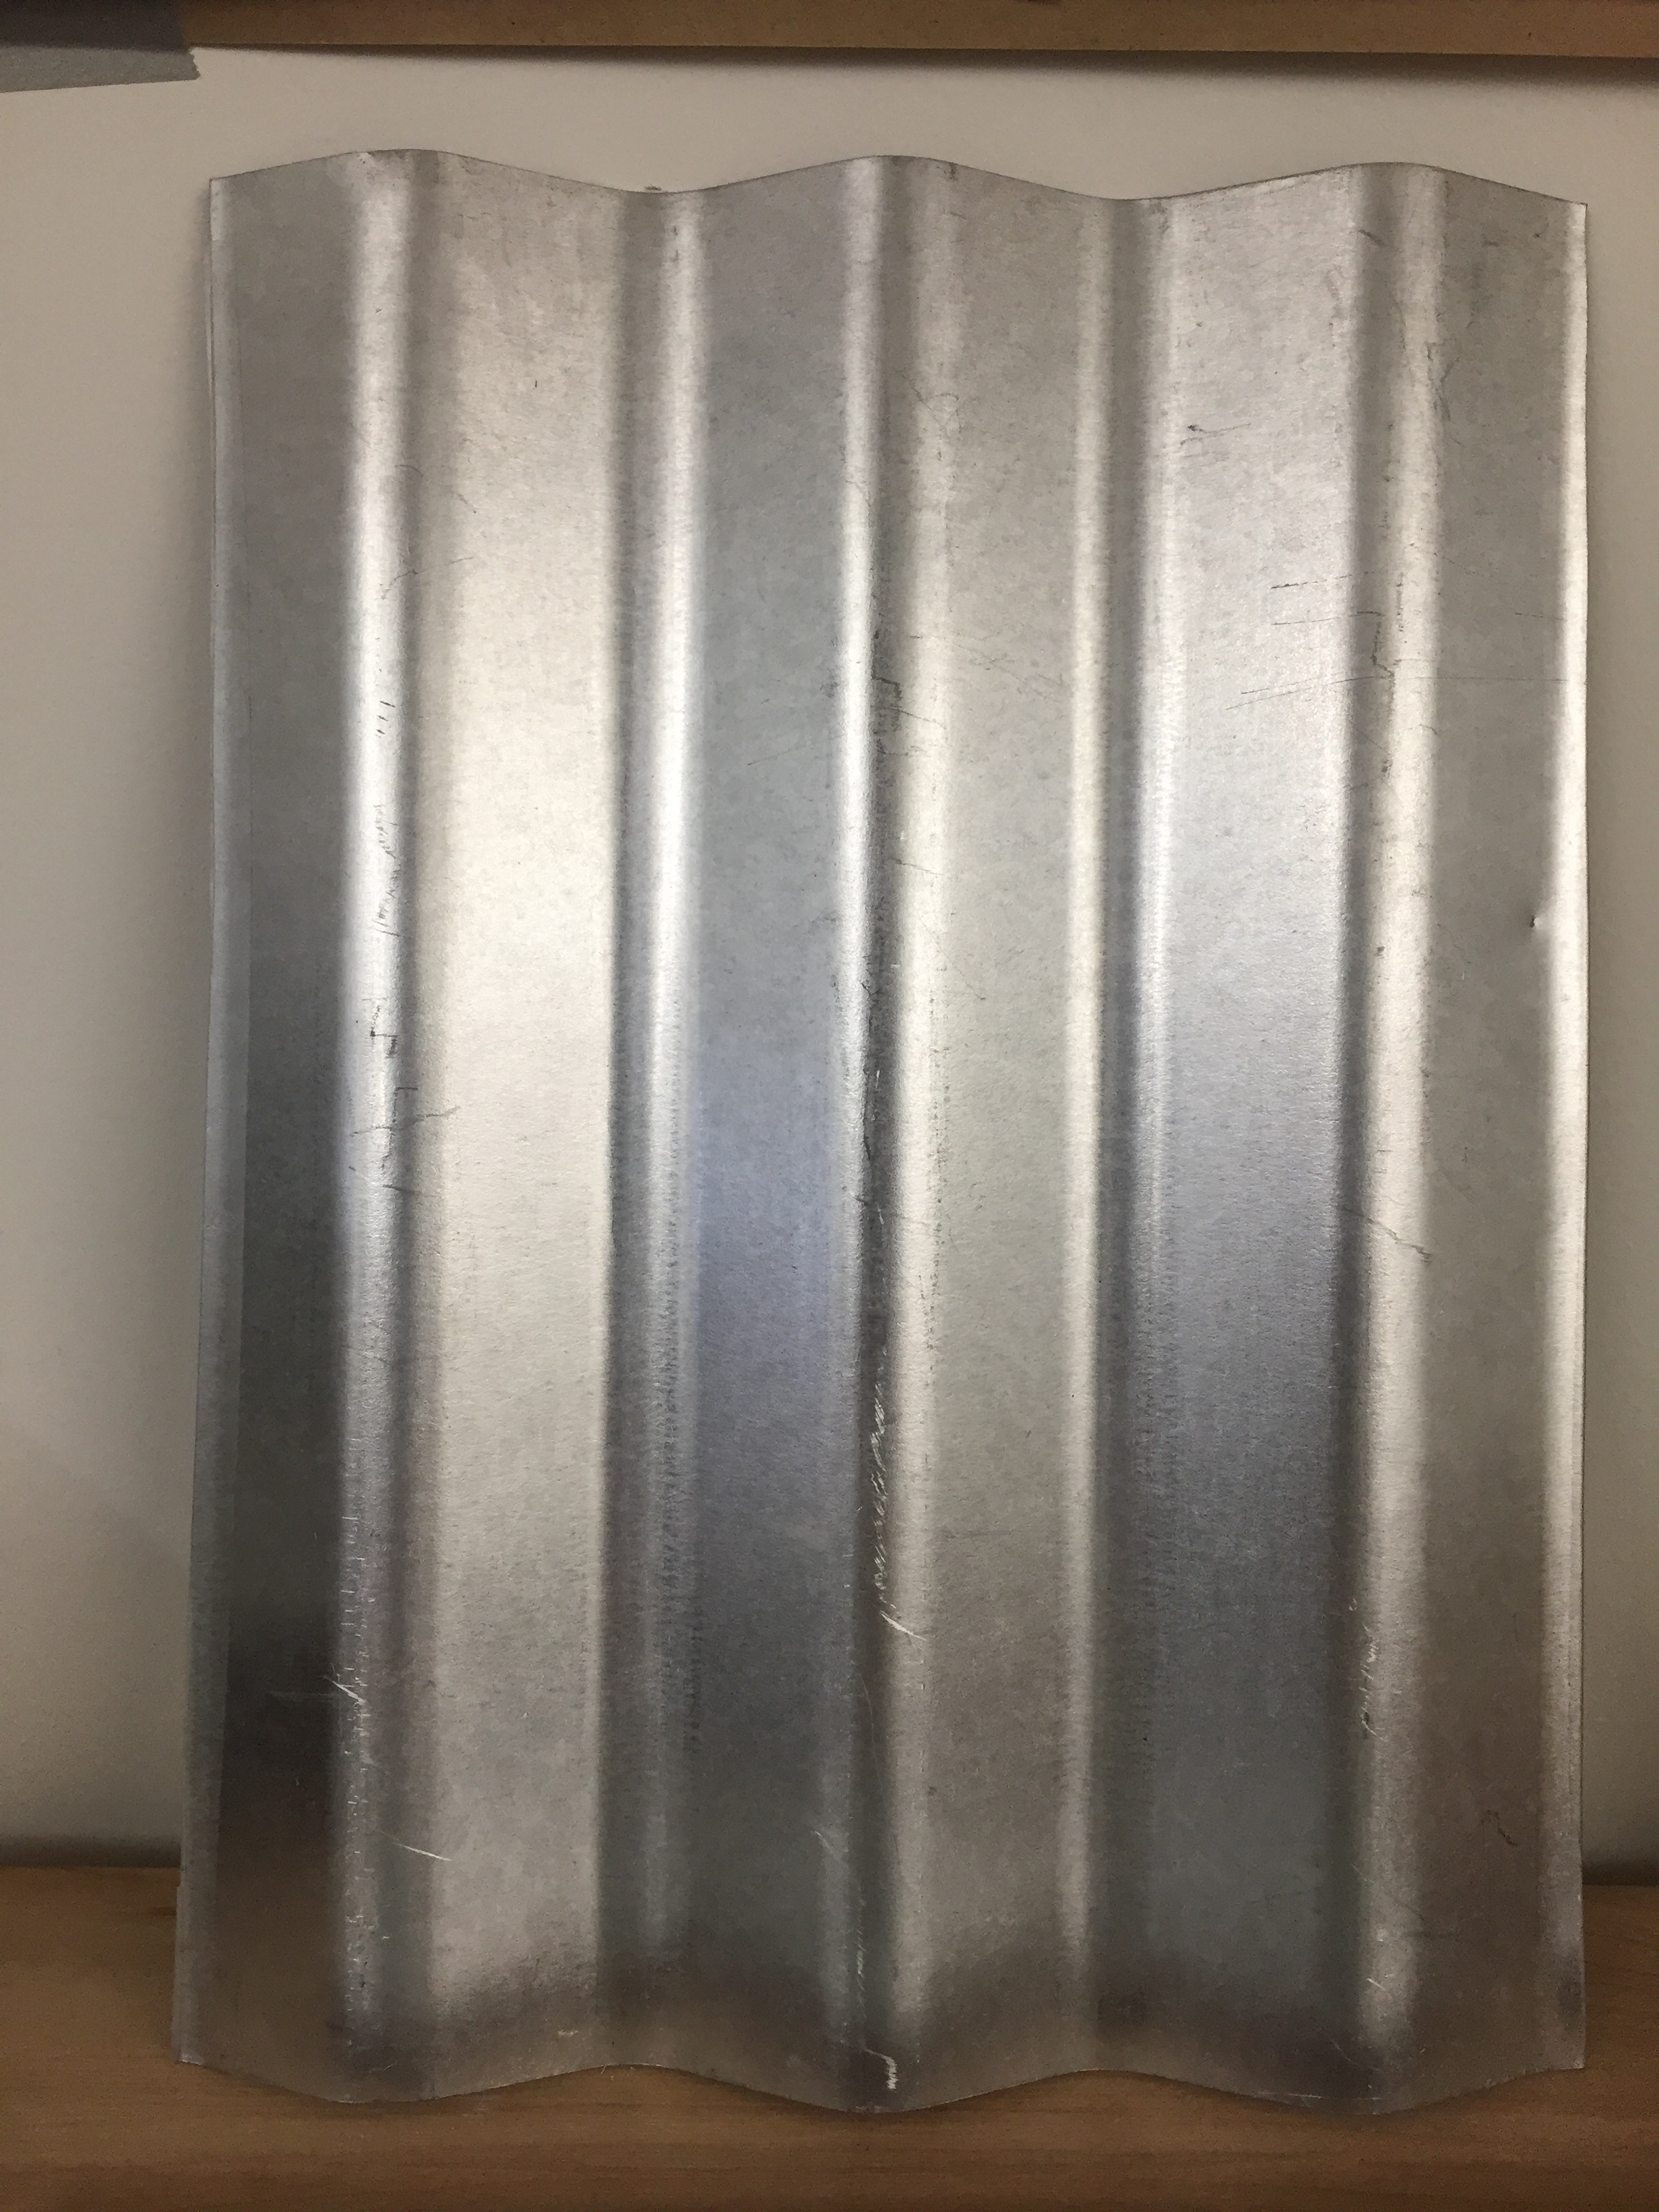 ECONOMICAL CORRUGATED SHEET METAL